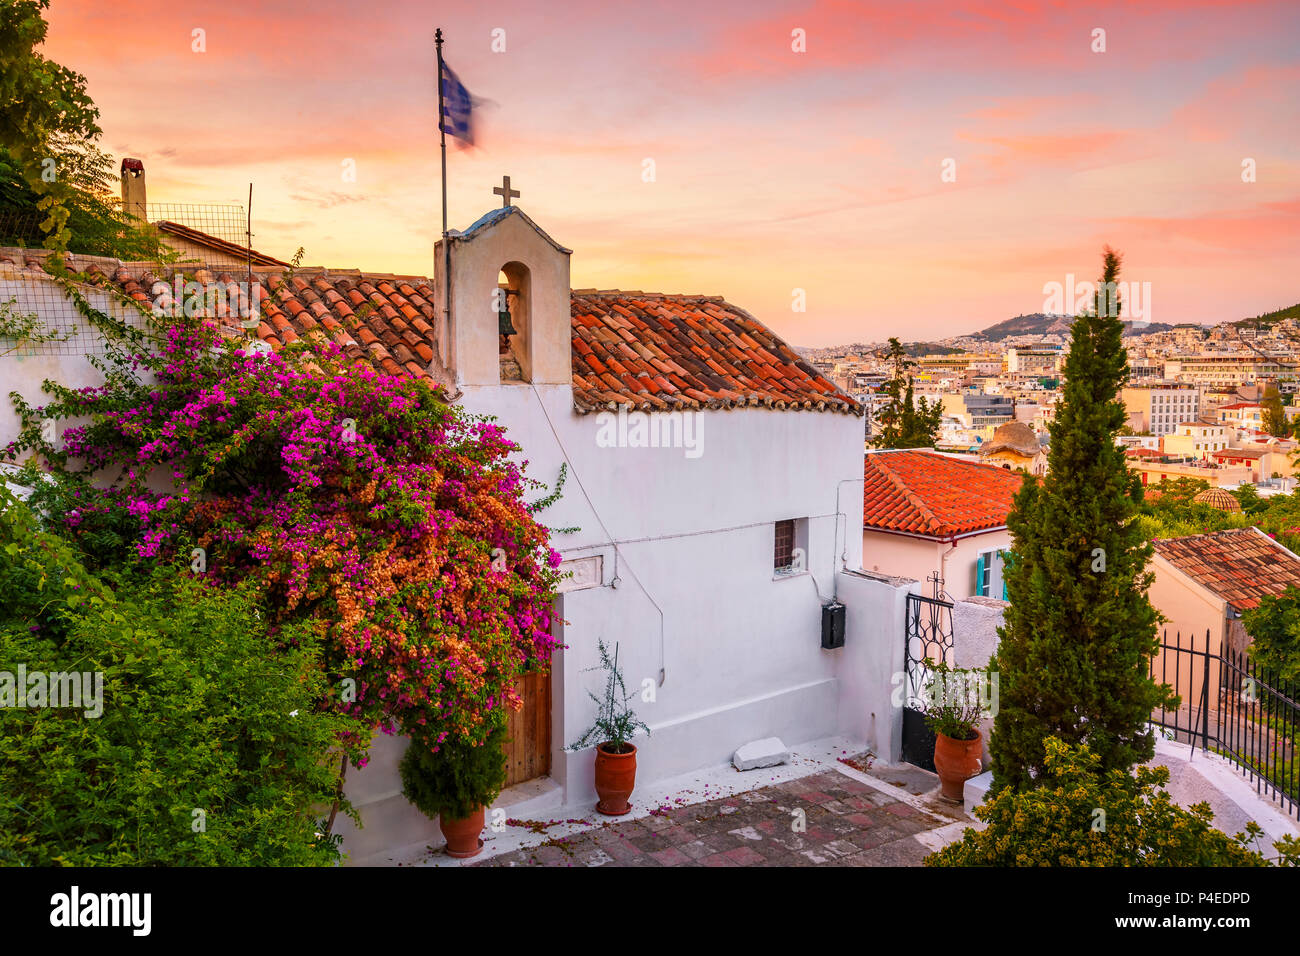 Church in Anafiotika neighborhood in the old town of Athens, Greece. - Stock Image